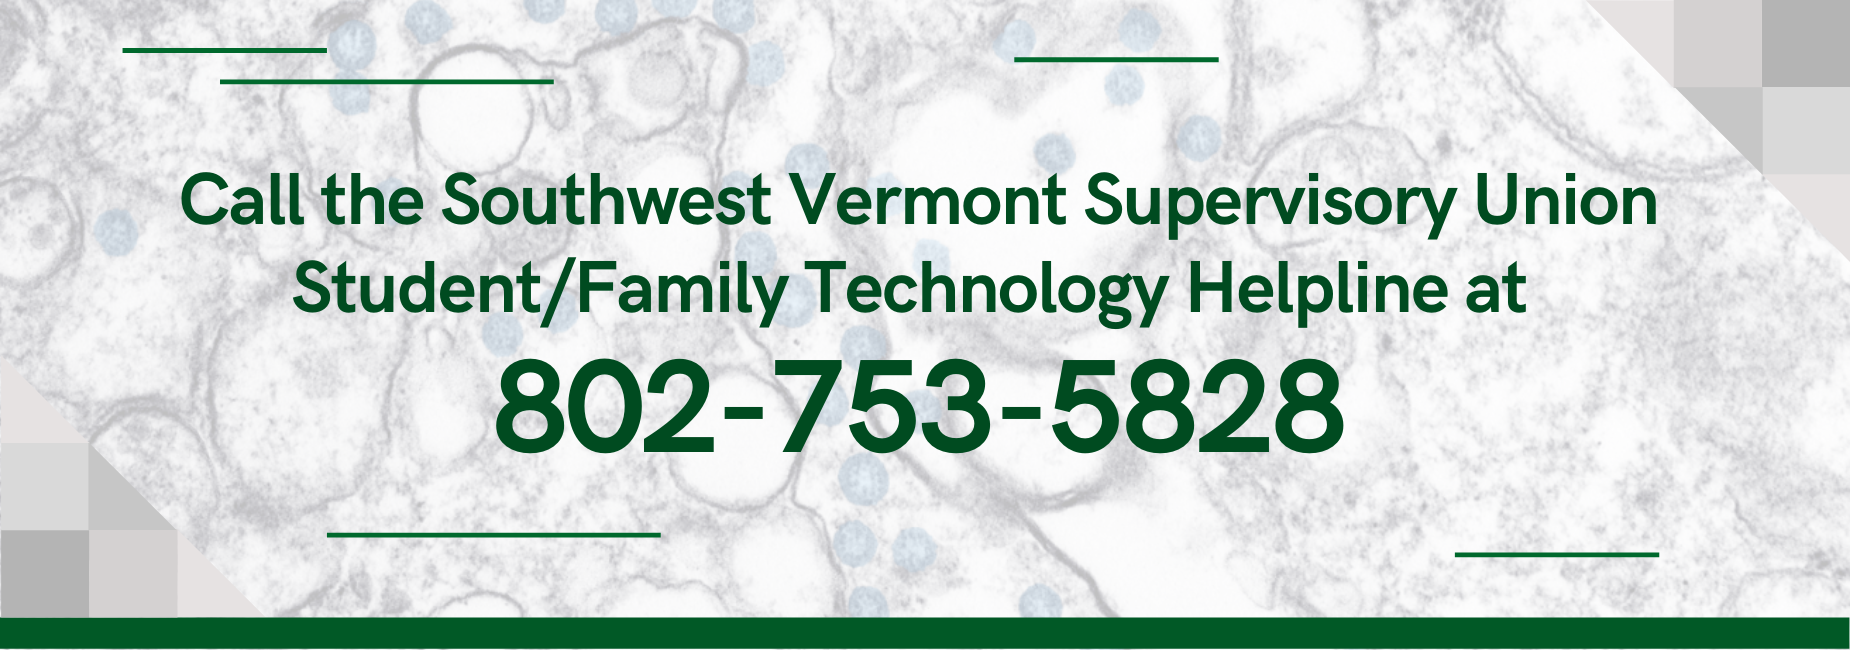 Call the Southwest Vermont Supervisory Union Student/Family Technology Helpline at  802-753-5828